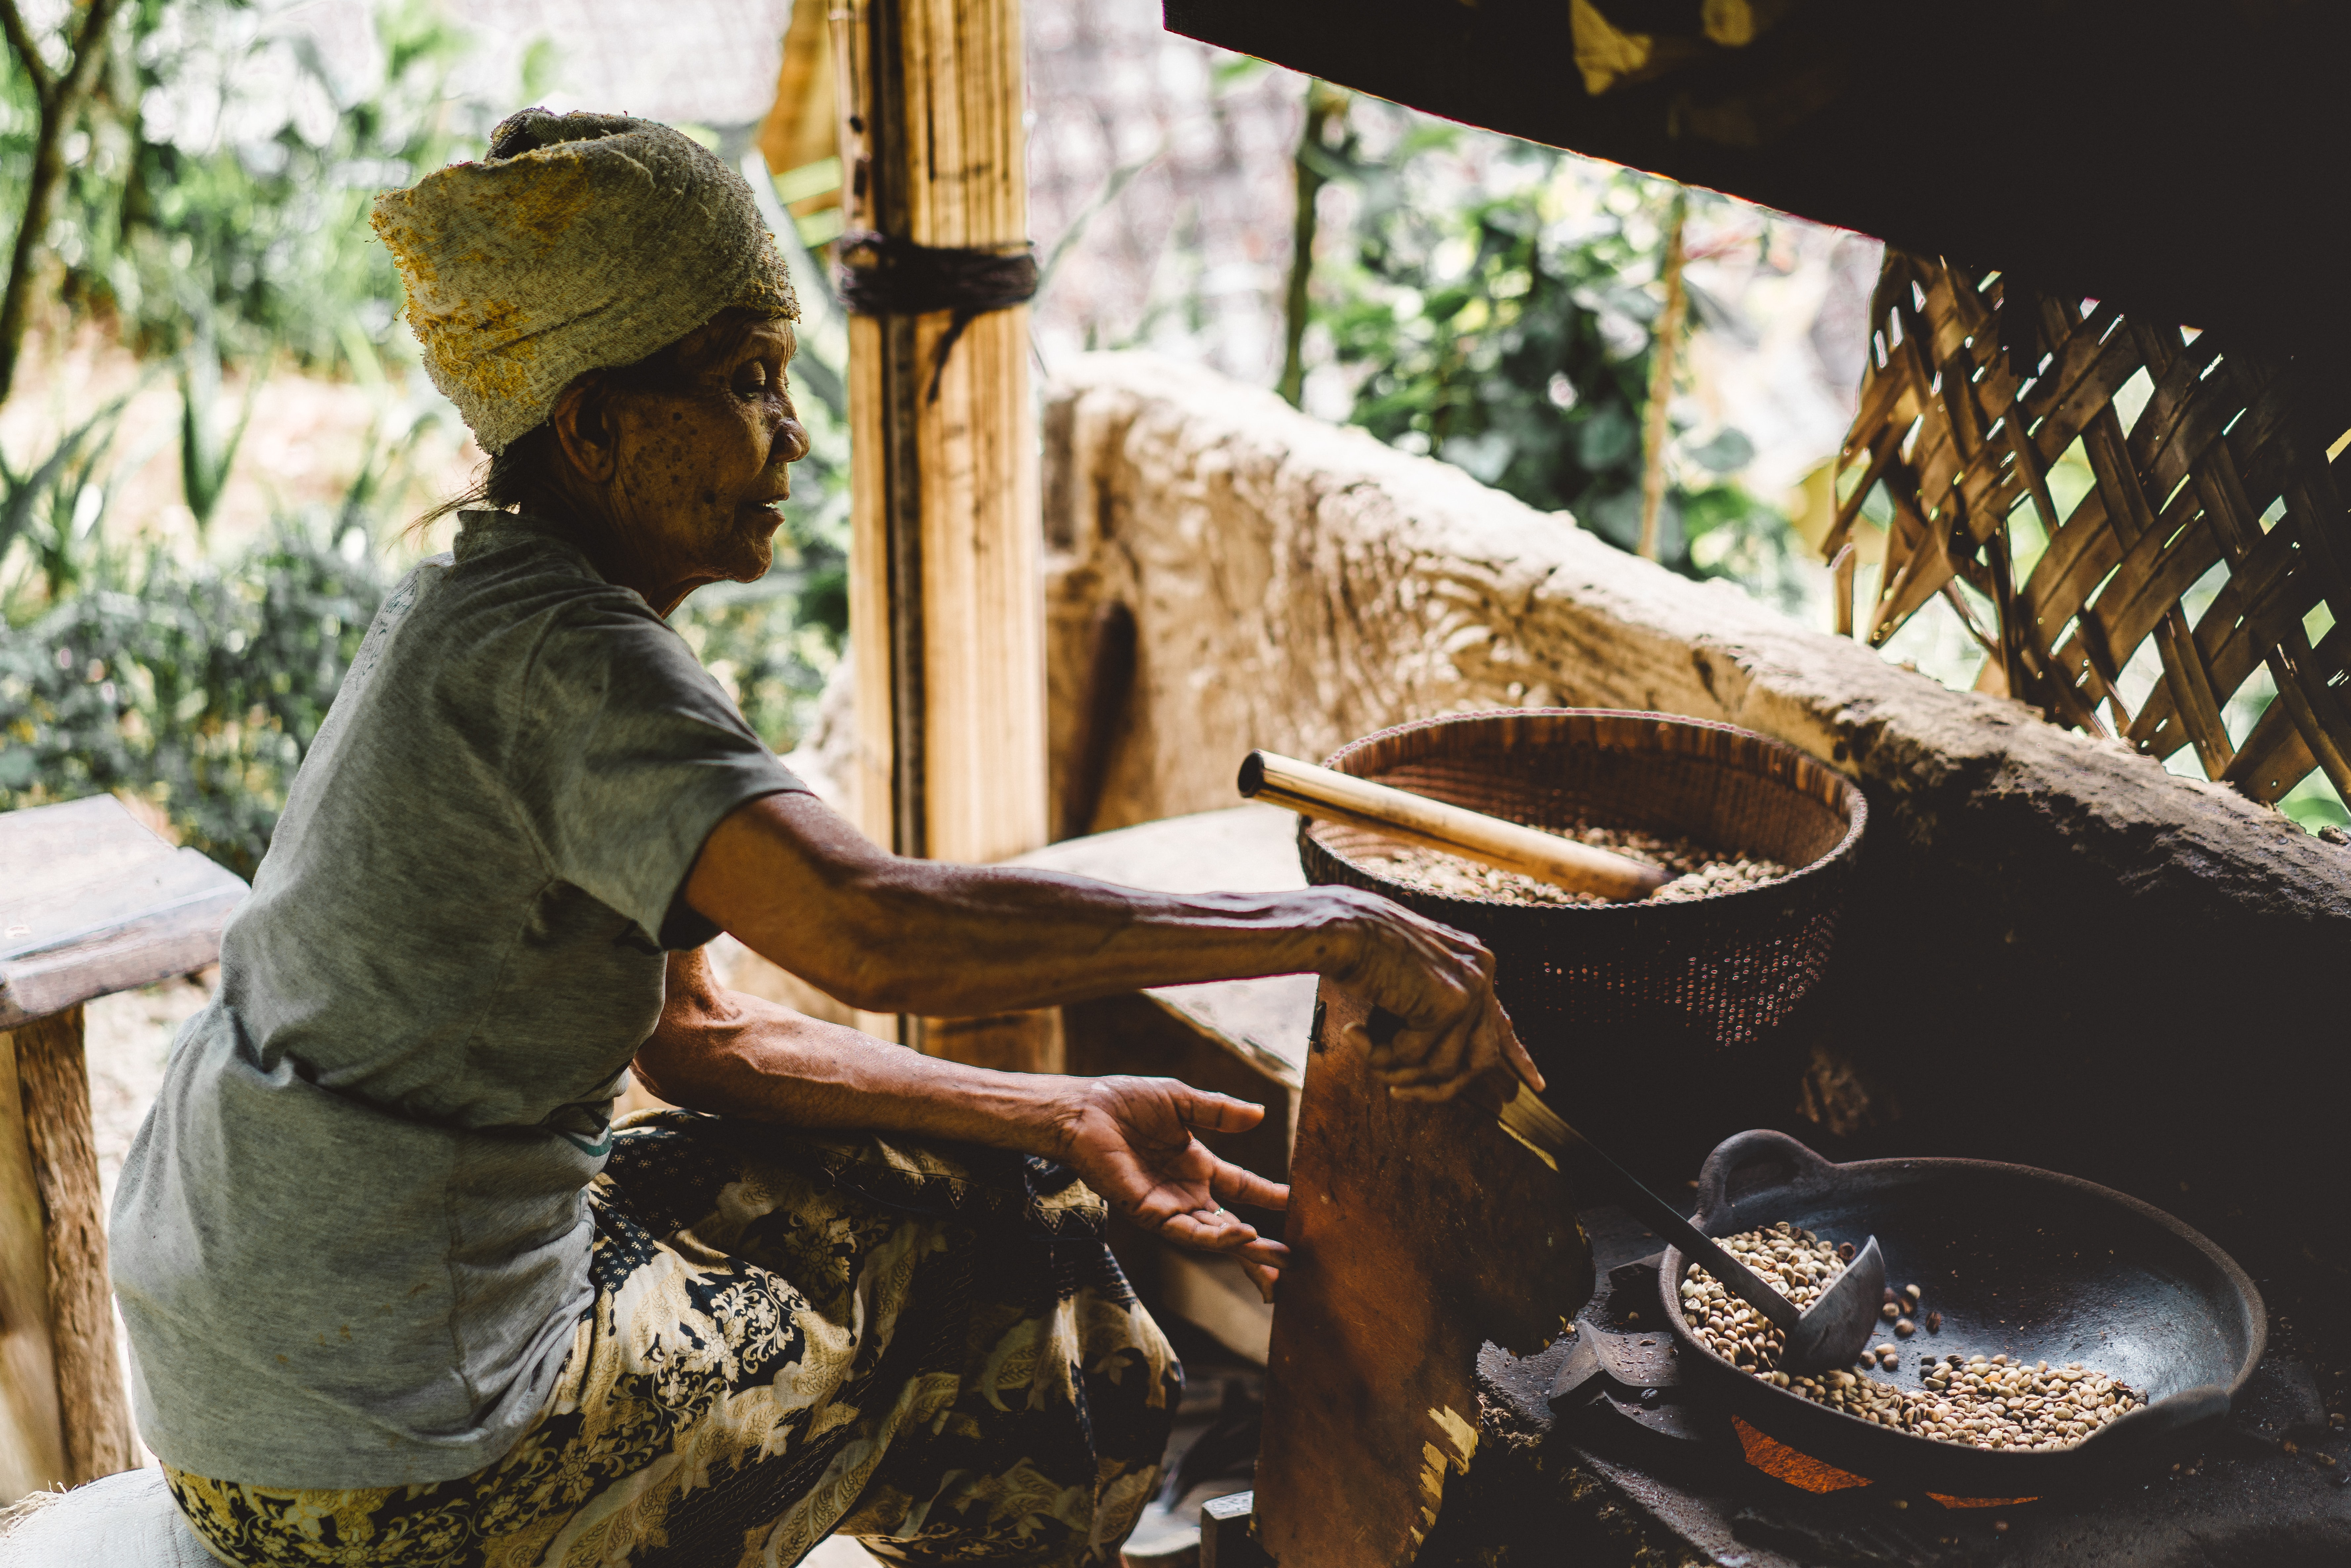 An old woman is sitting by the stove cooking beans with a spatula and a wok.